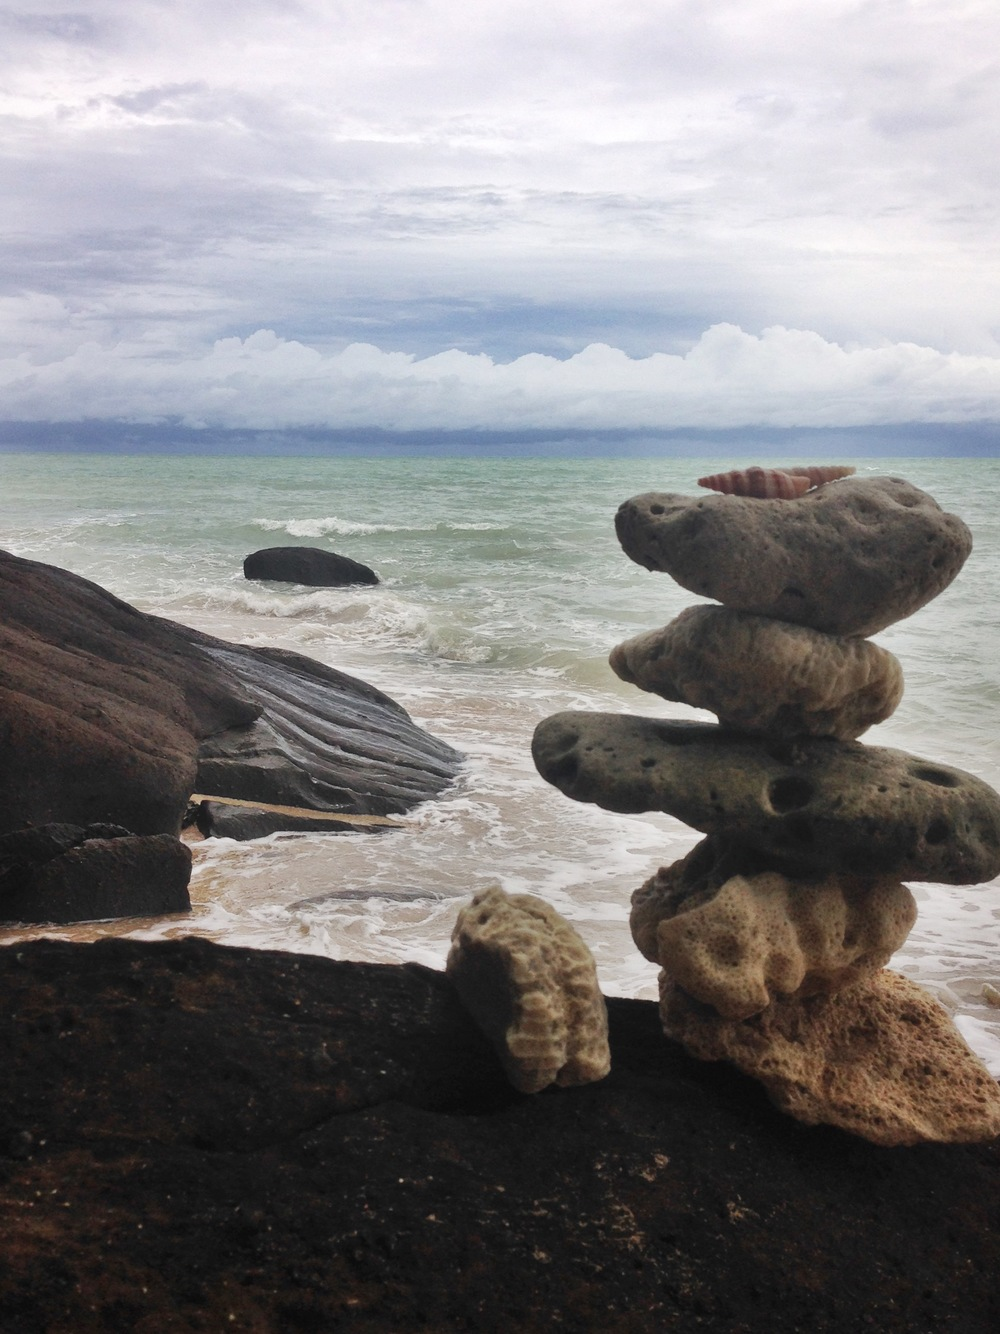 A cairn on the beach